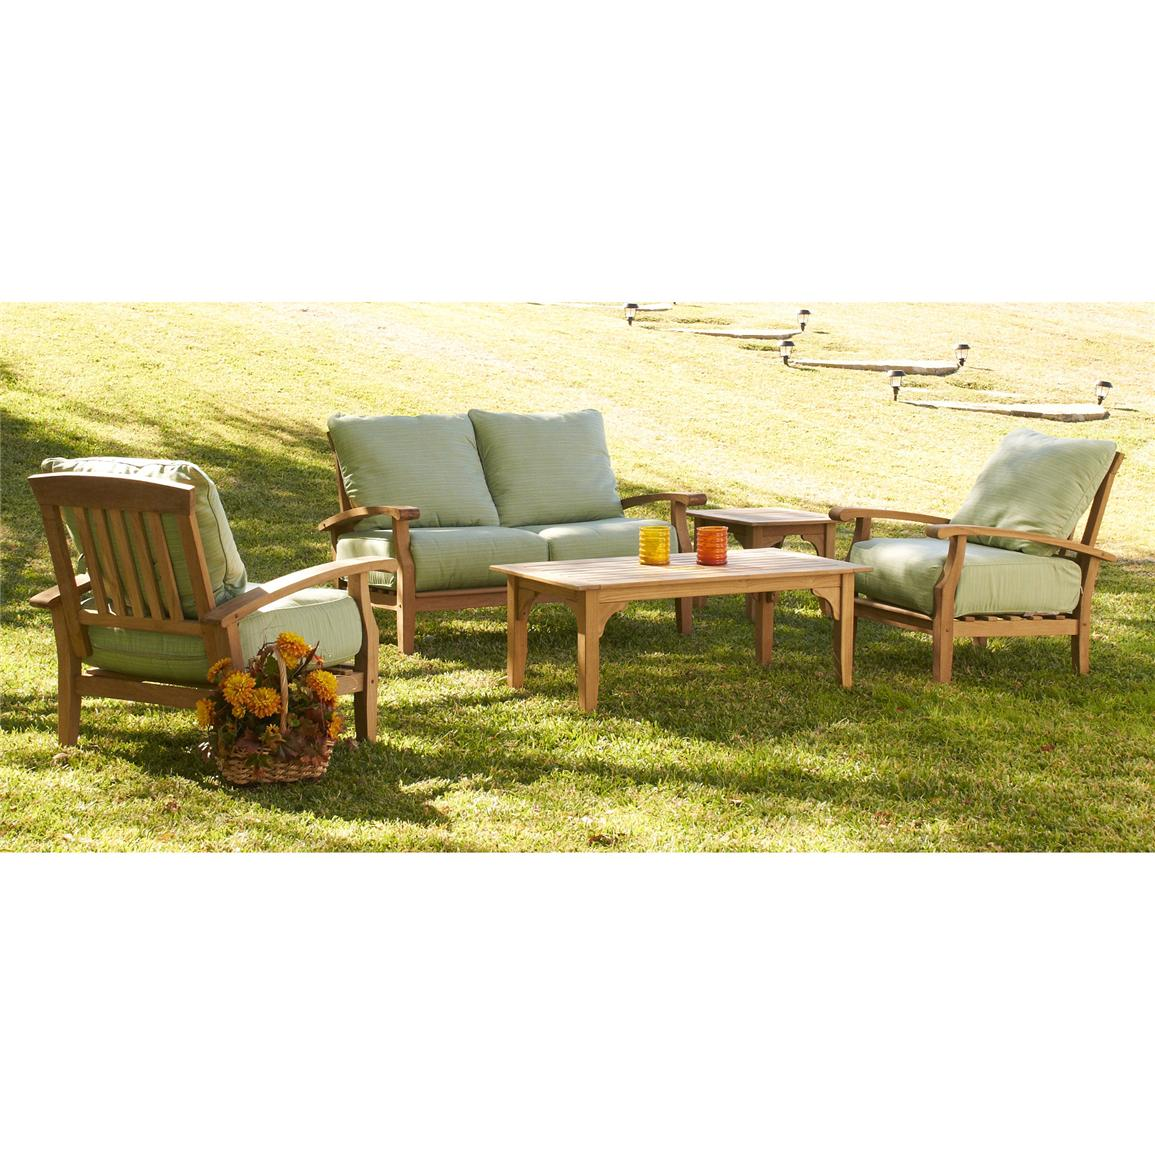 5-Pc. Holly & Martin™ Colleyville Teakwood Outdoor Deep Seating Sofa Set